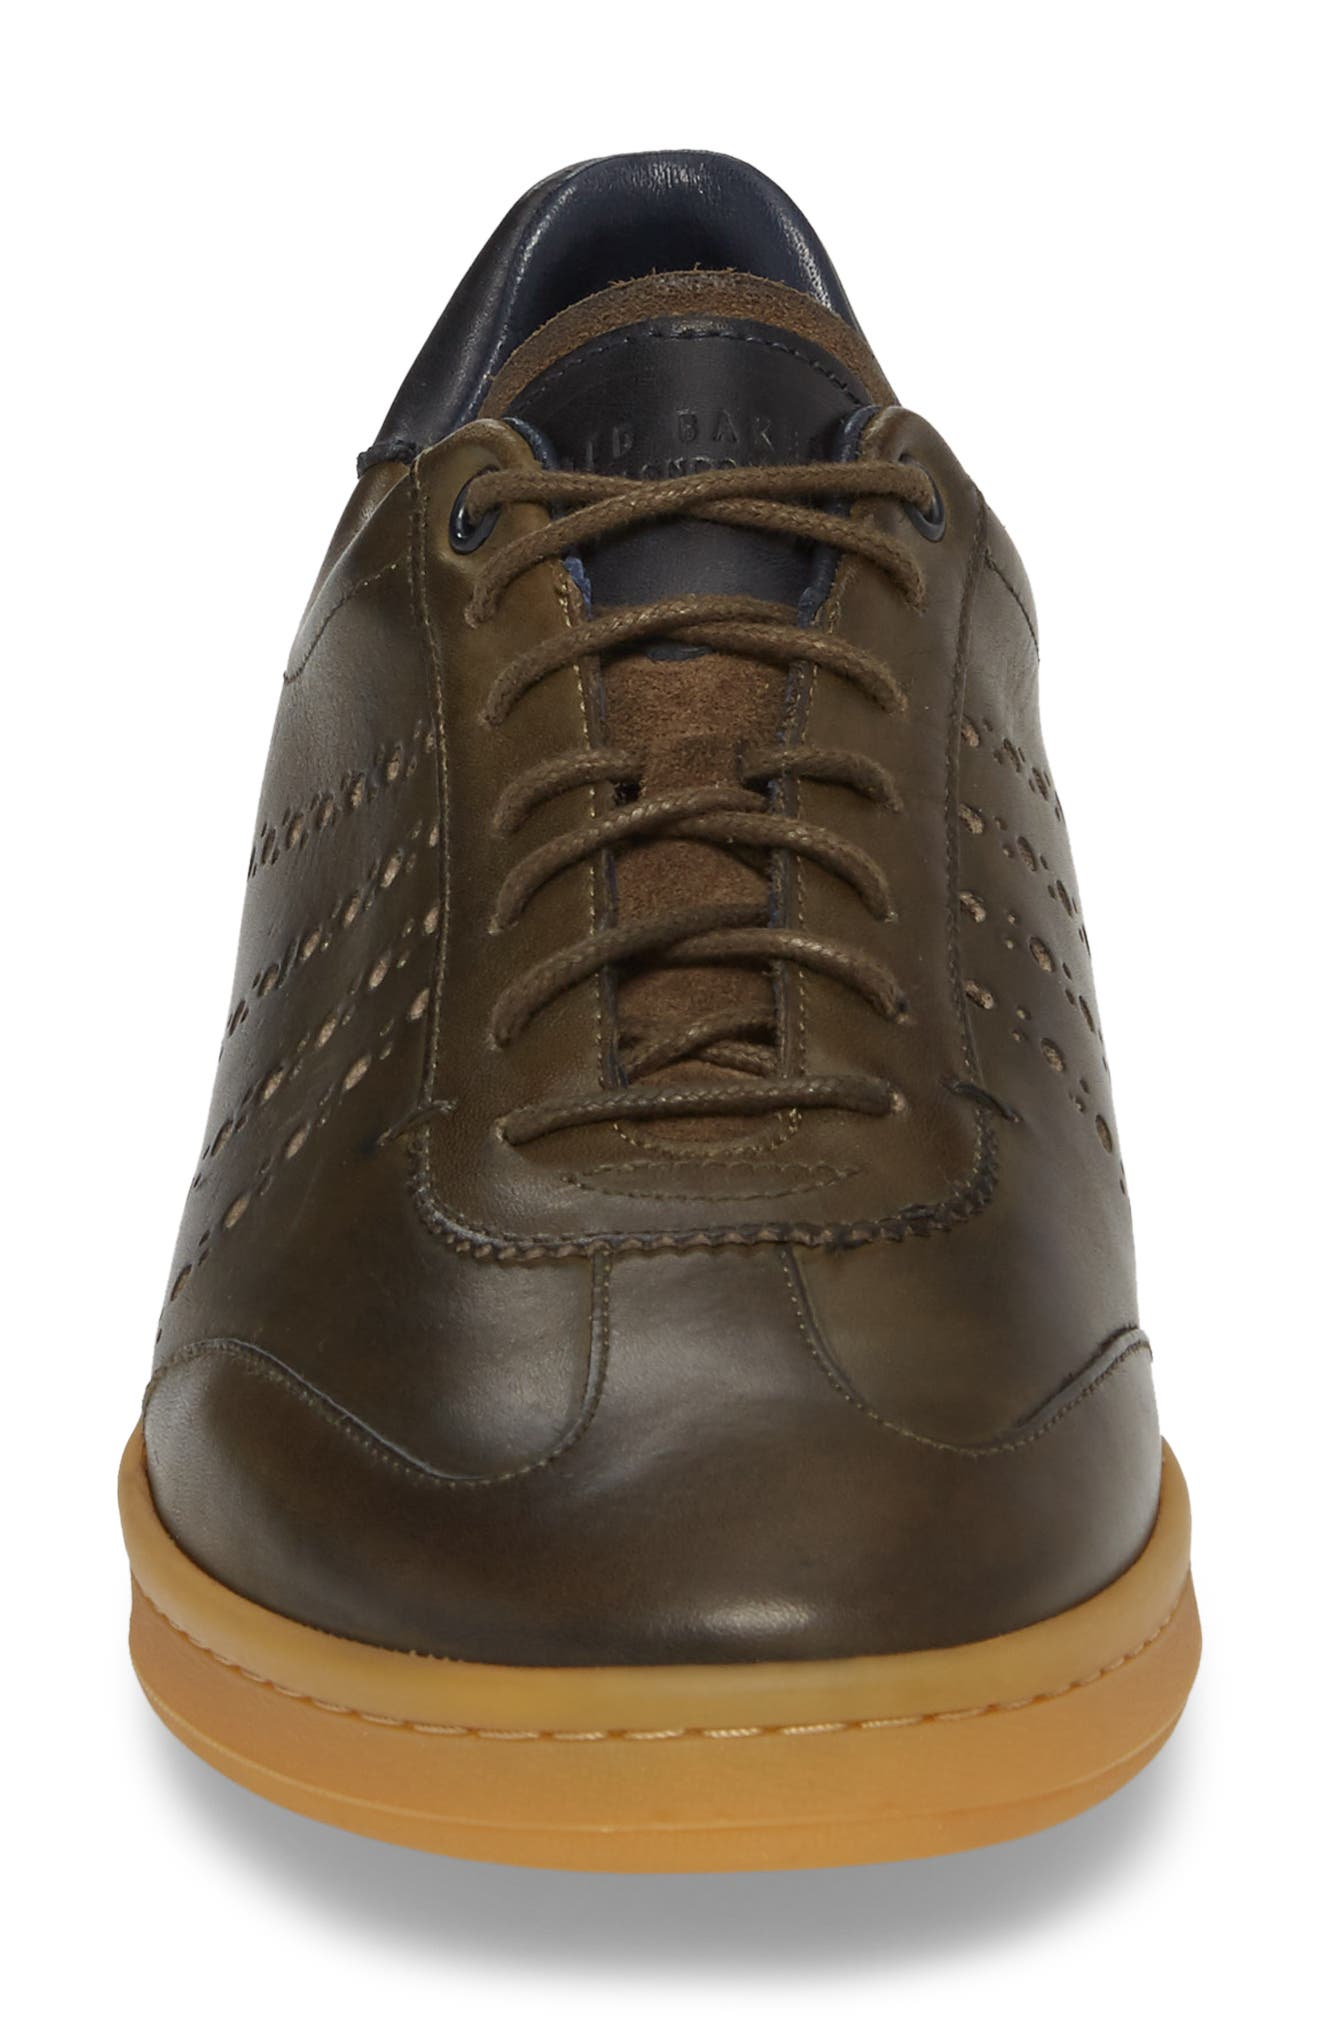 Orlee Sneaker,                             Alternate thumbnail 5, color,                             Dark Green Leather